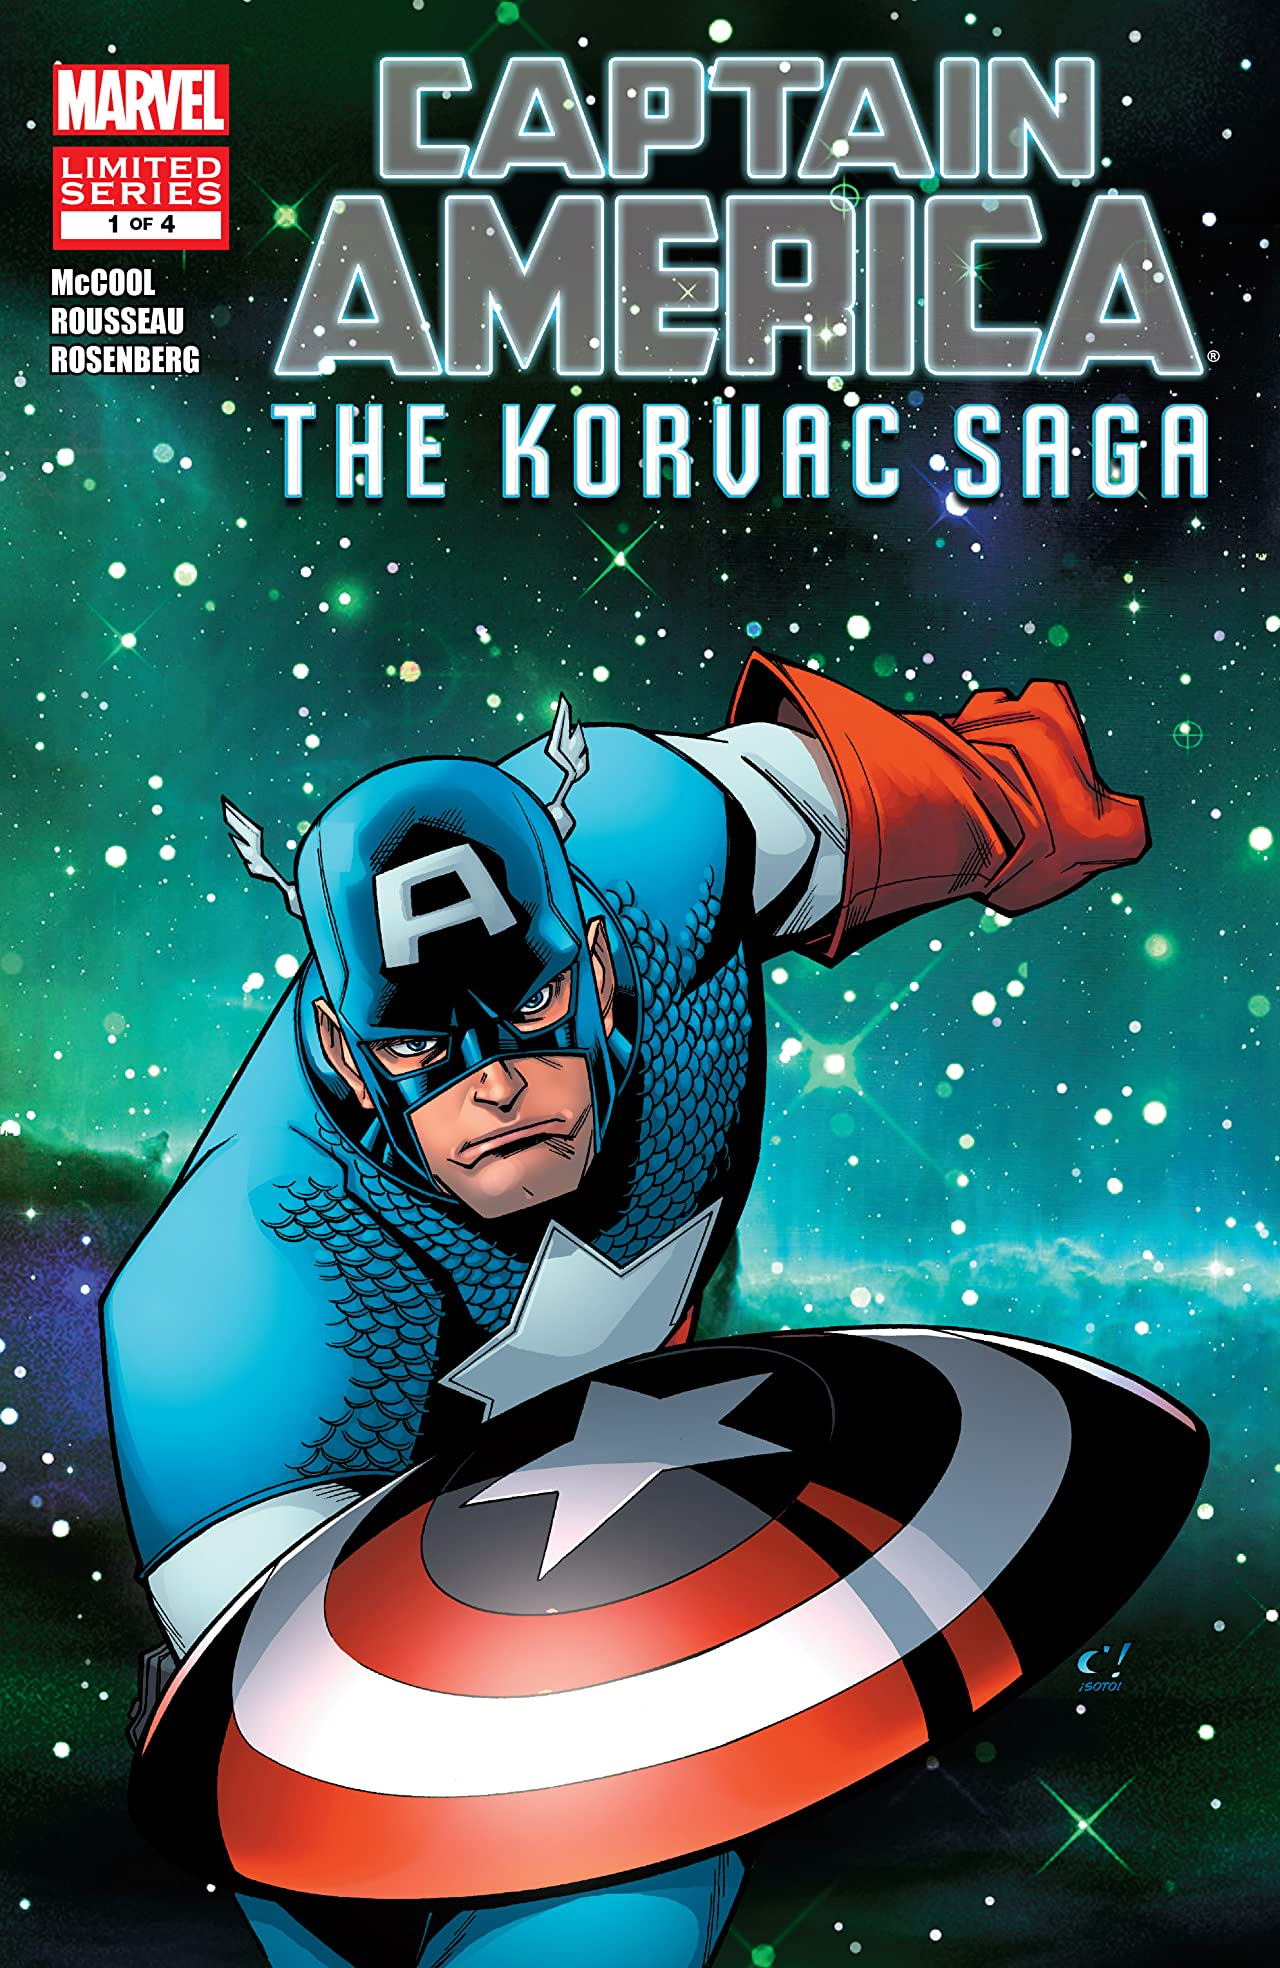 Captain America And The Korvac Saga (2010) #1 (of 4)